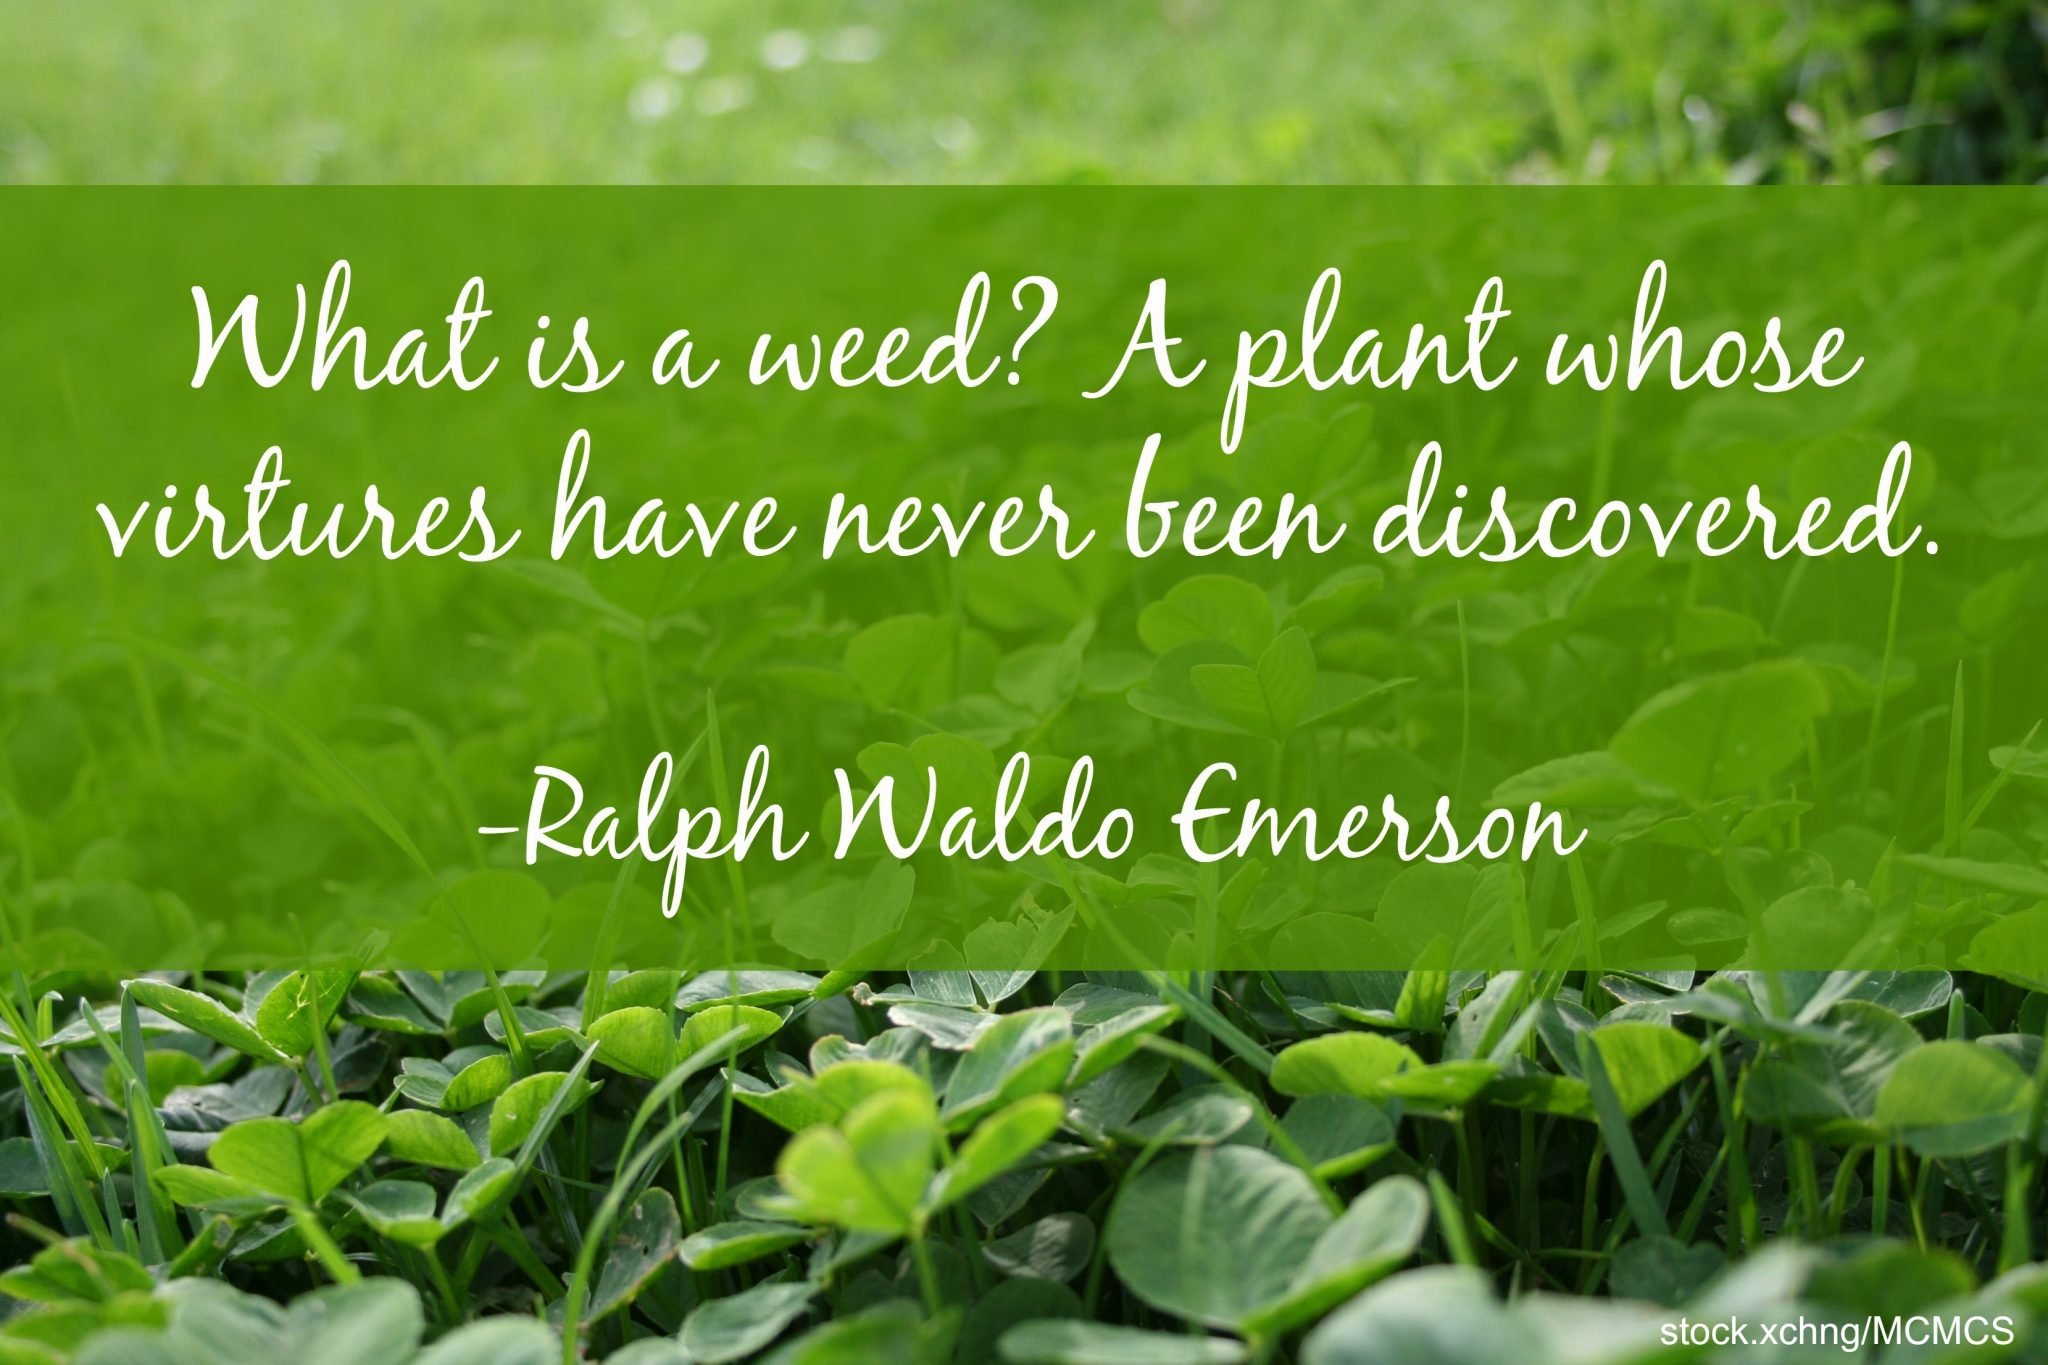 Garden Quotes: Best Gardening Quotes by Famous People | Install-It ...